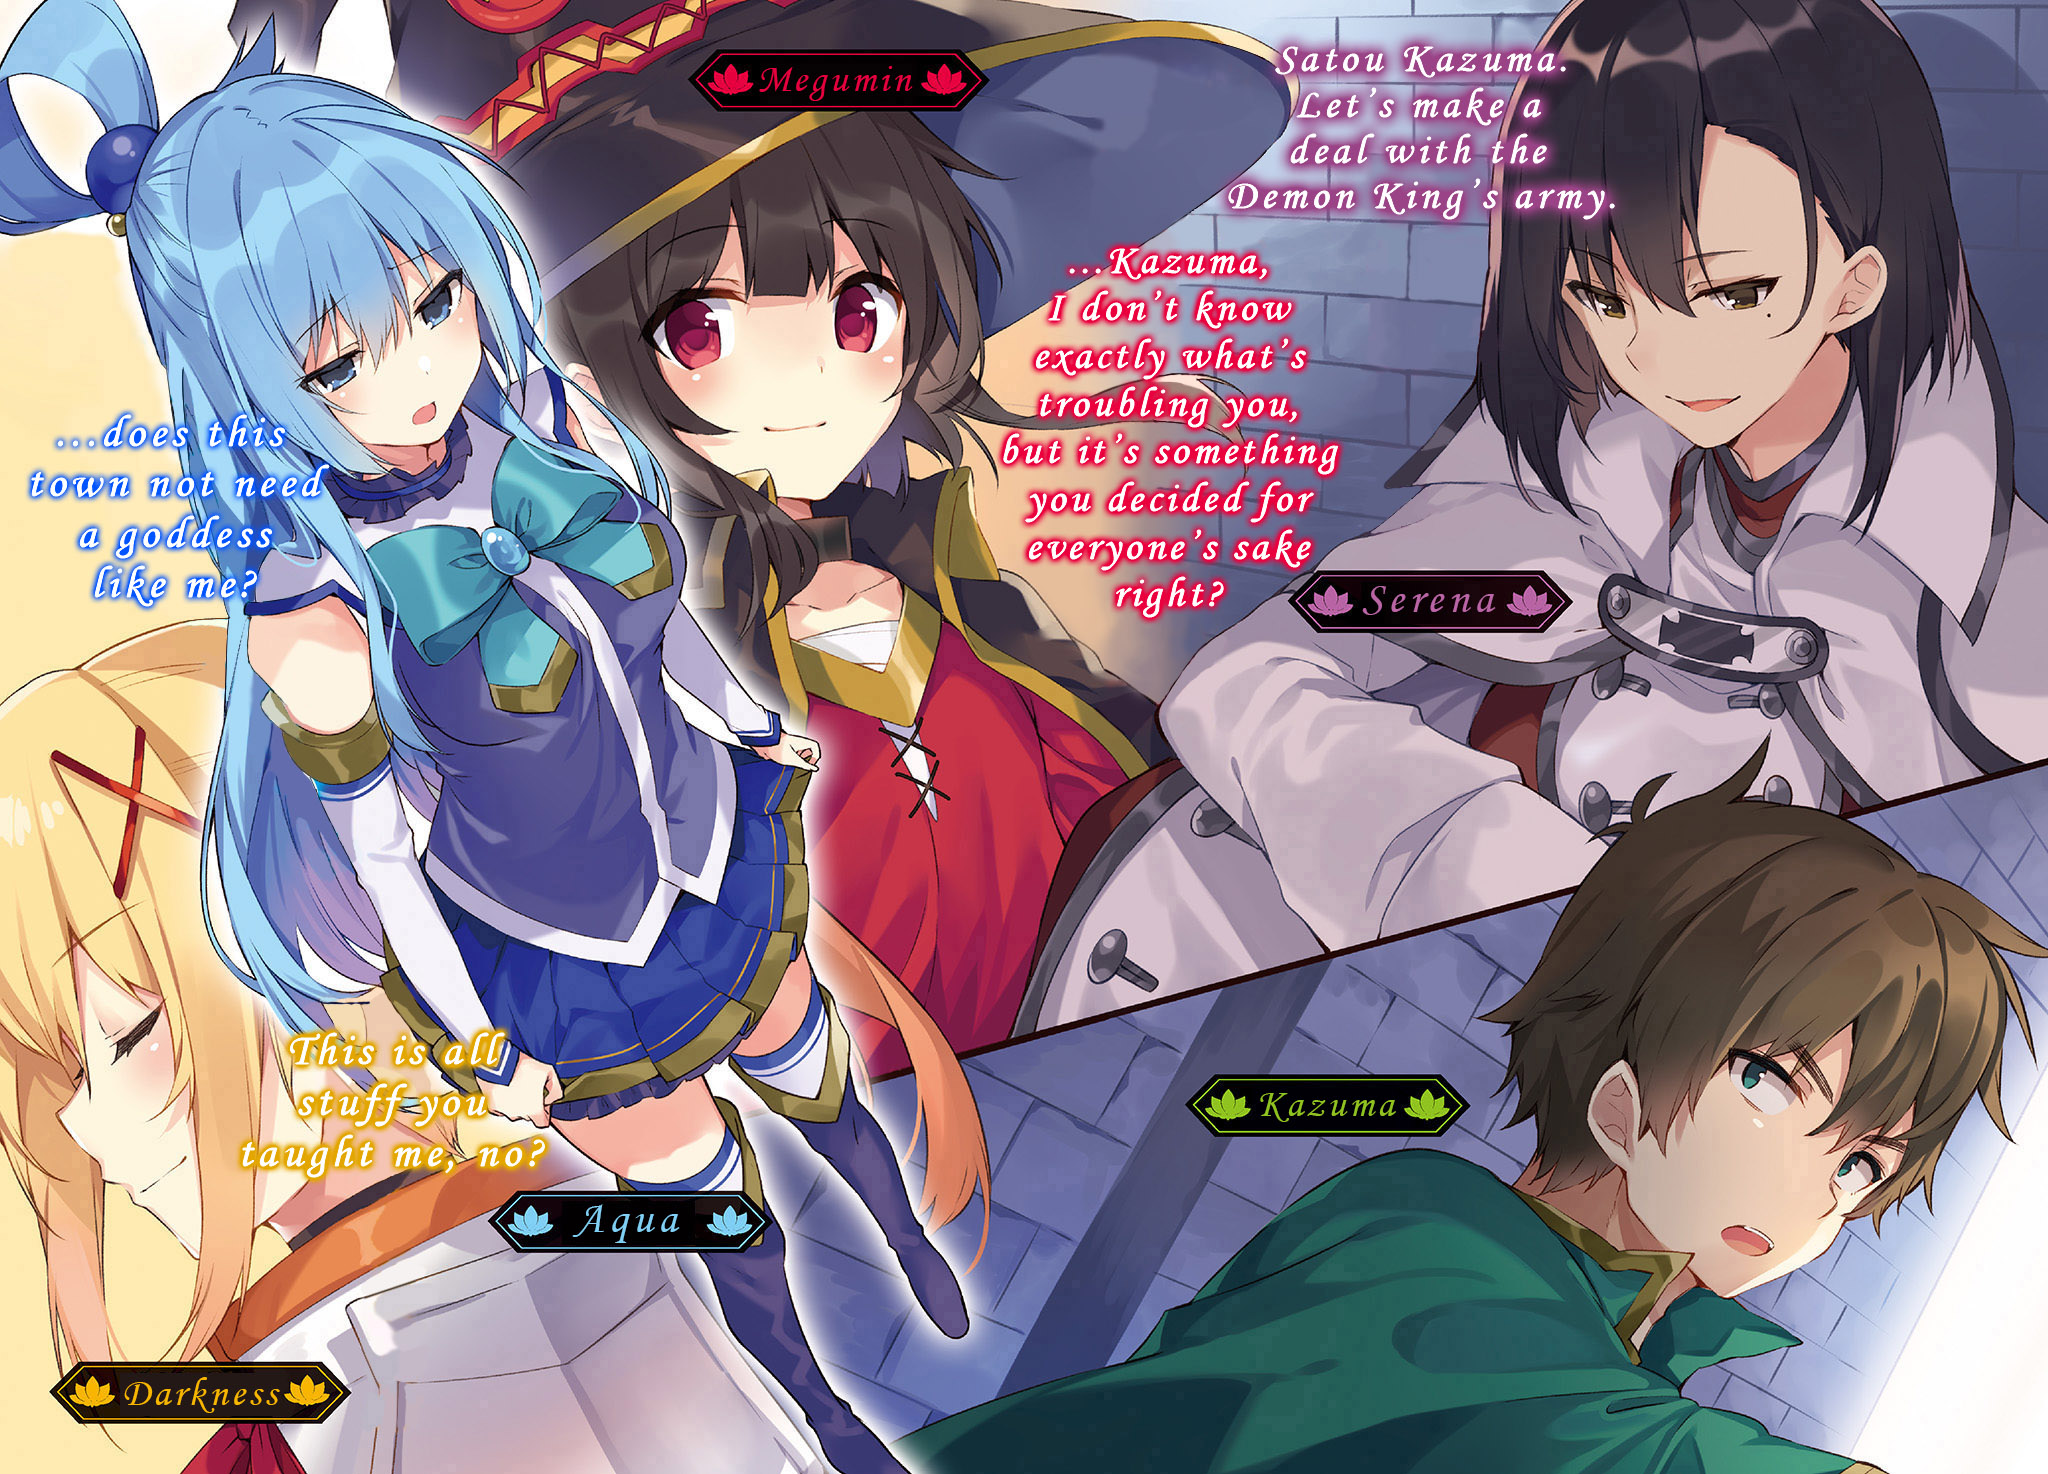 Konosuba Volume 15 Prologue – CGTranslations